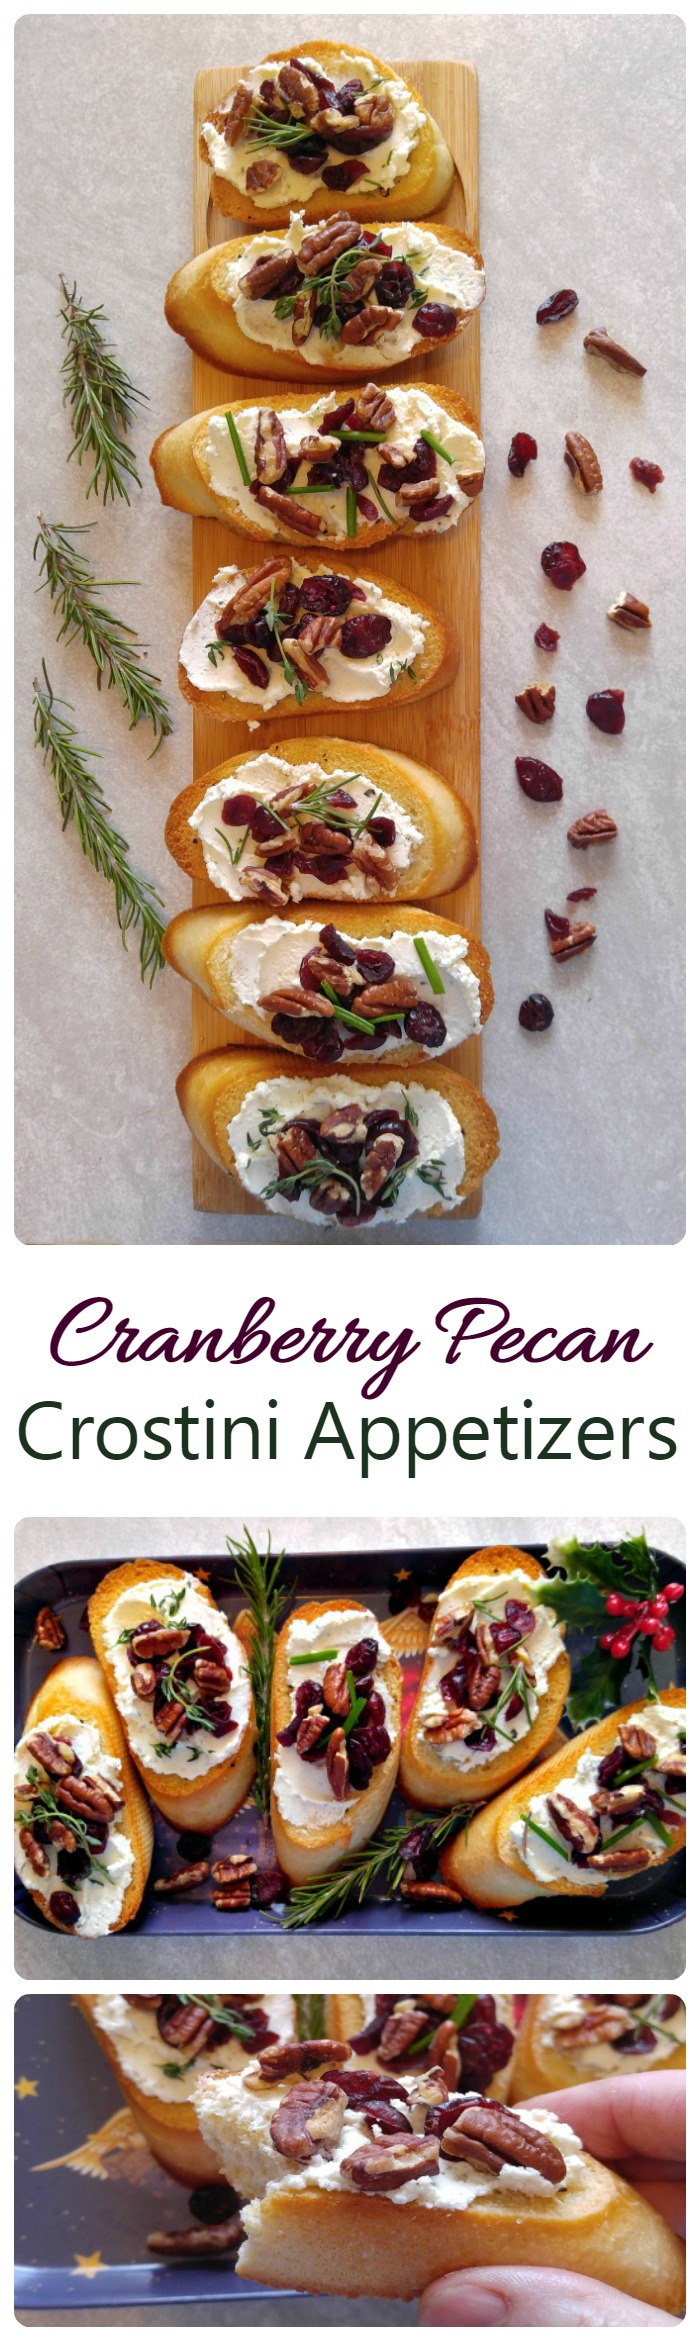 Cranberry Pecan Crostini Appetizers